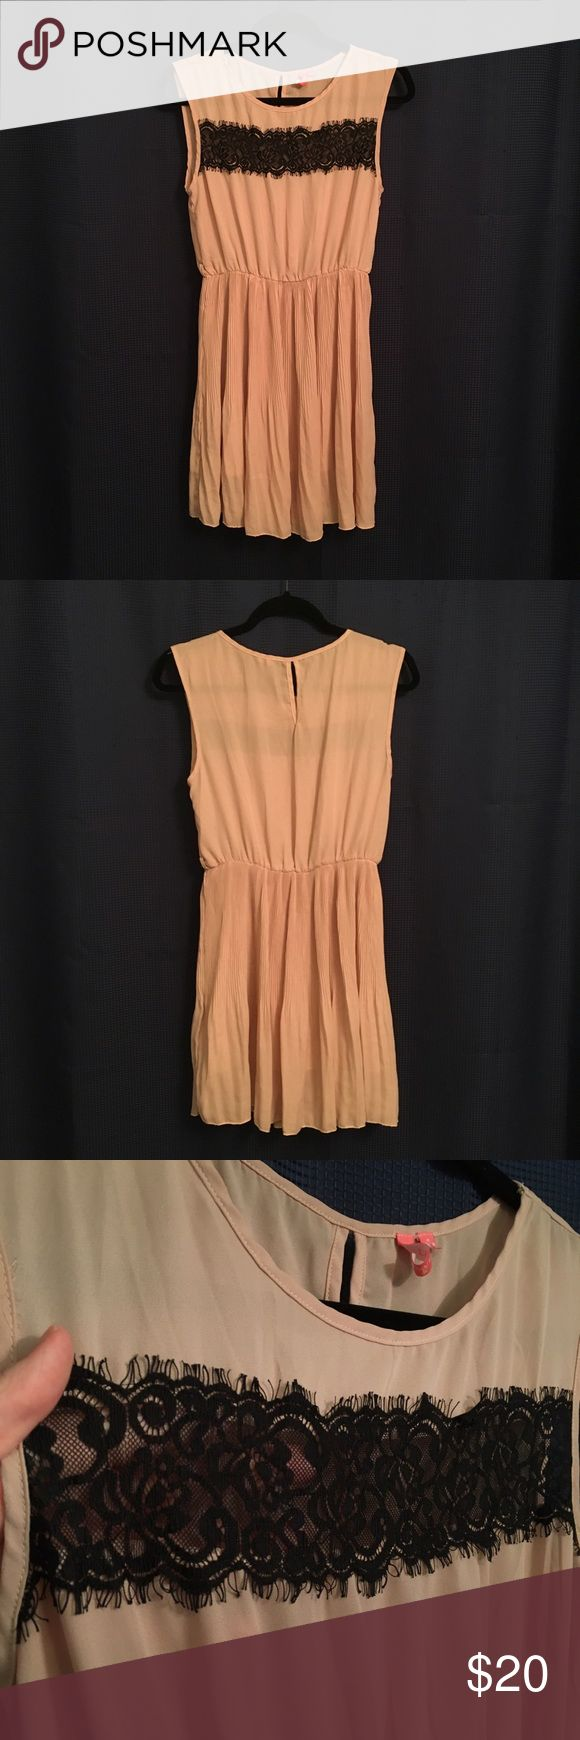 *SALE* Peach colored dress Excellent condition! Peach colored dress with a black Lace stripe size M. No tears or stains! Dresses